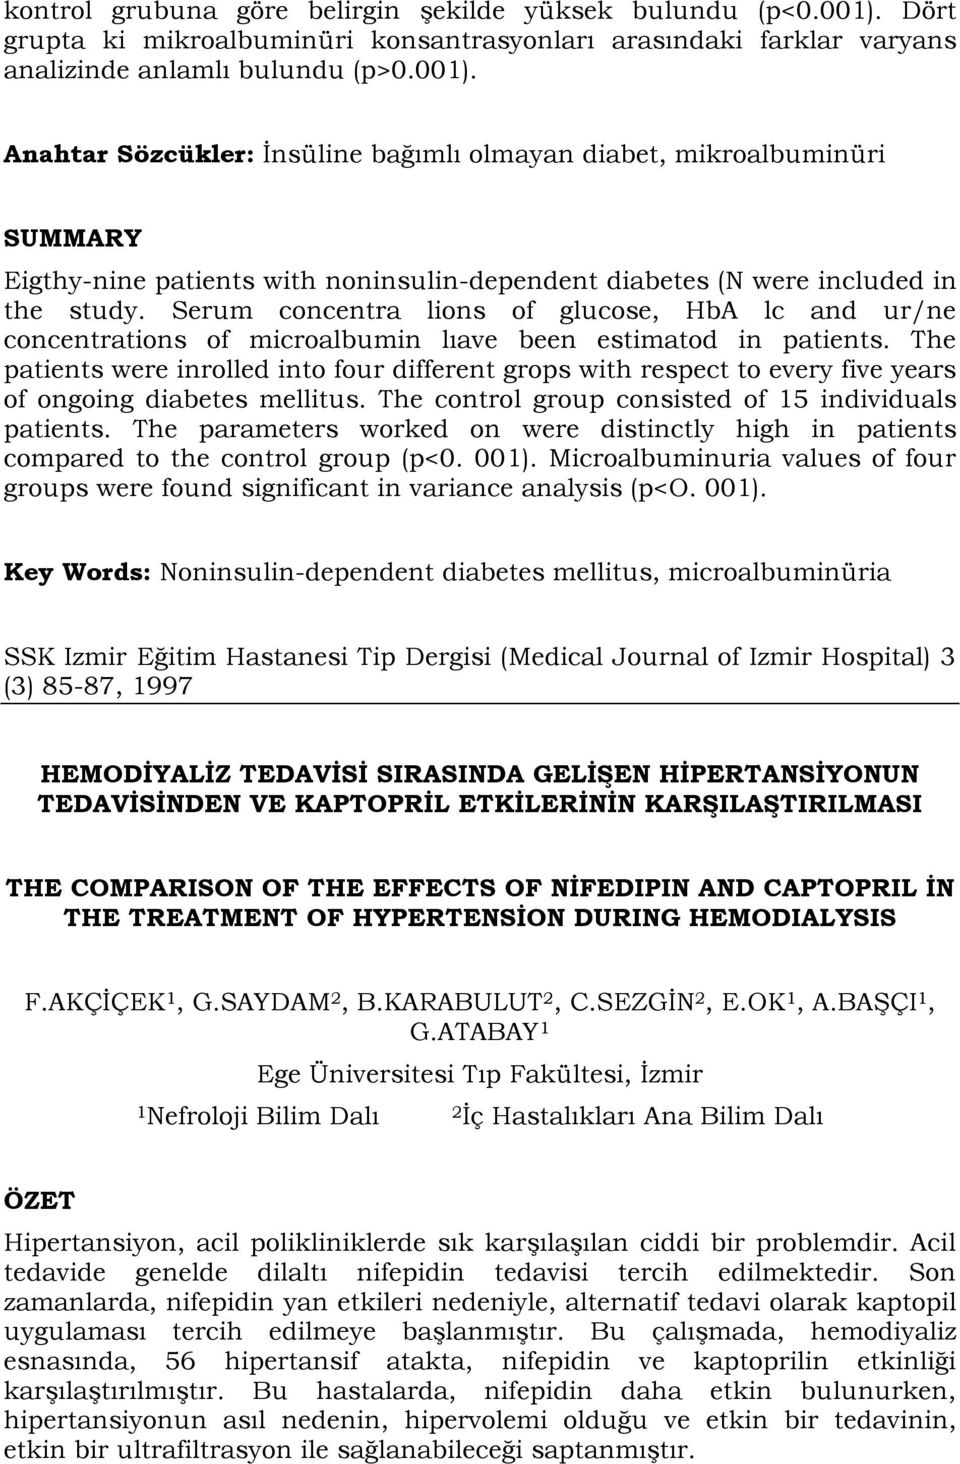 Anahtar Sözcükler: İnsüline bağımlı olmayan diabet, mikroalbuminüri Eigthy-nine patients with noninsulin-dependent diabetes (N were included in the study.